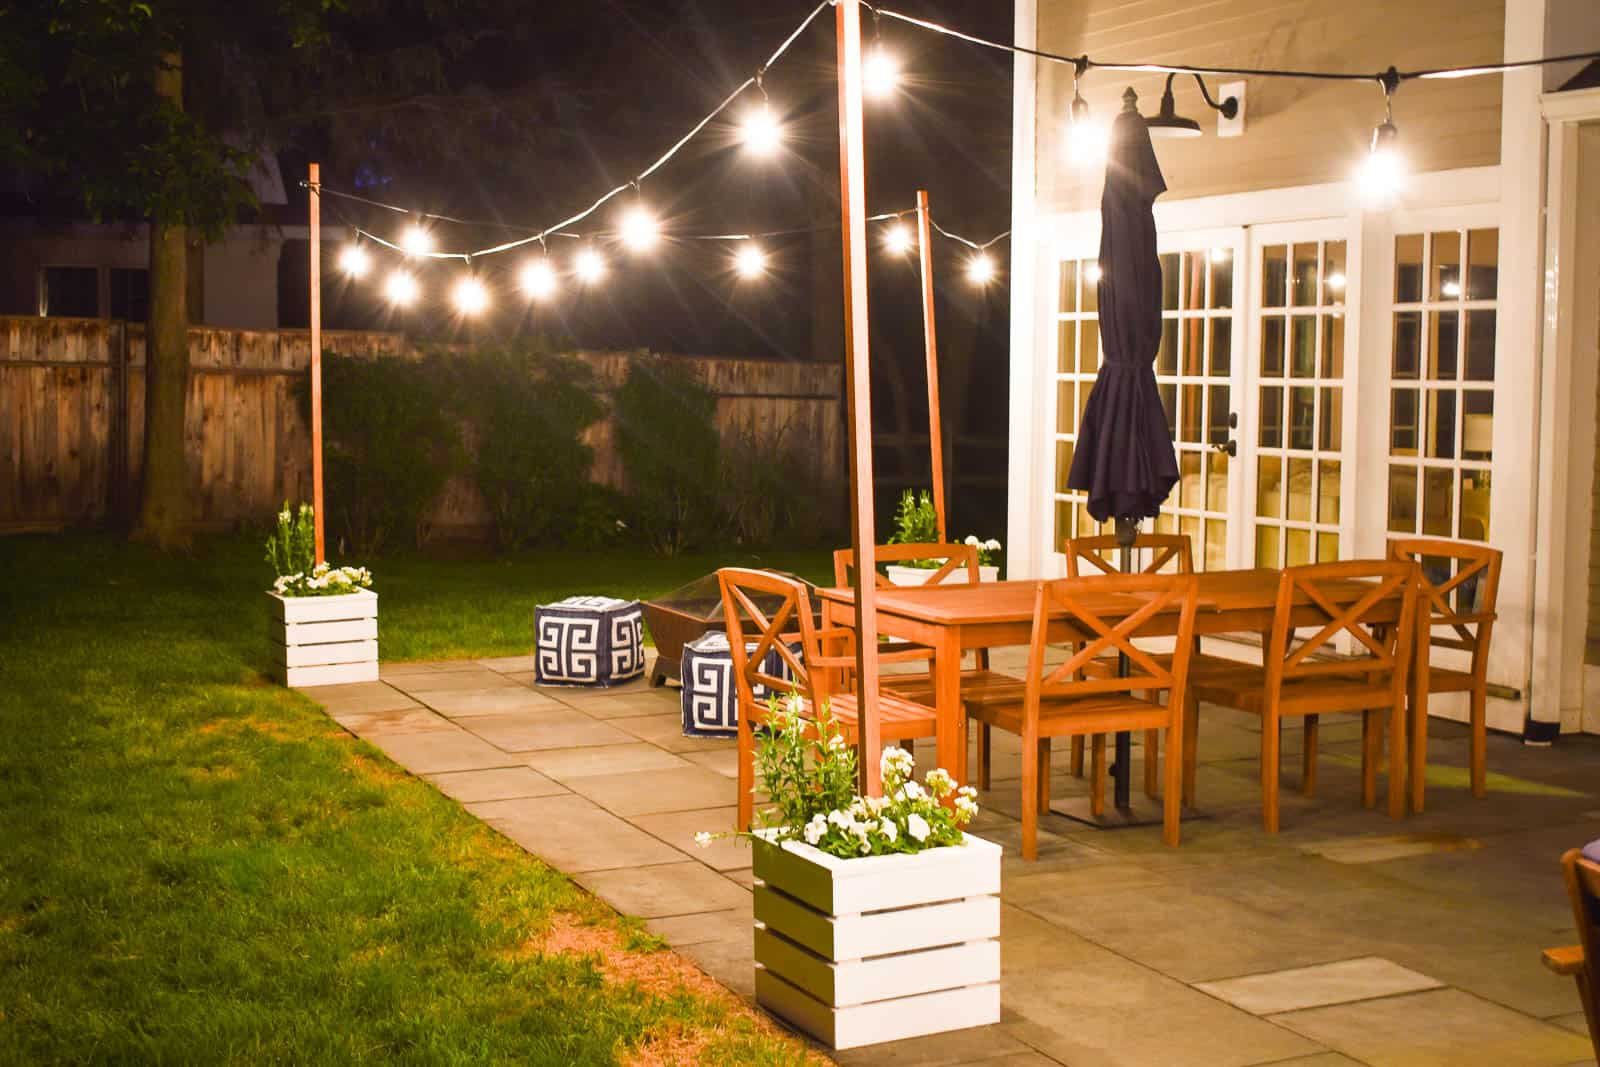 wooden planters with build in pole for hanging string lights